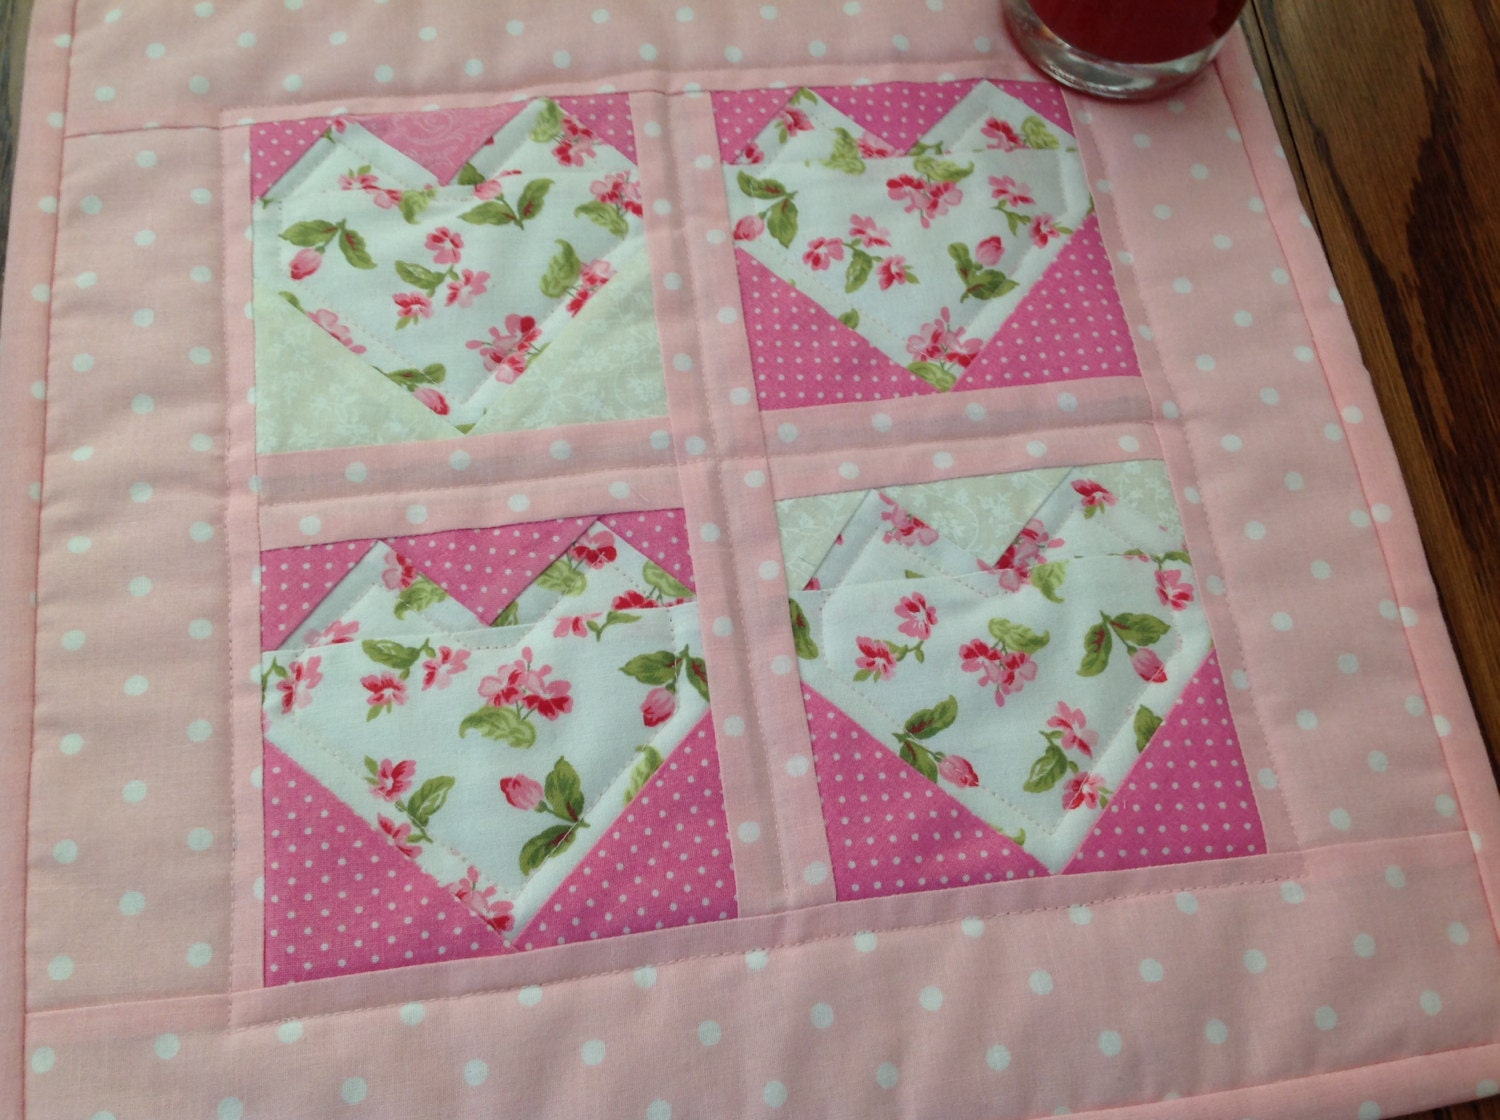 Miniature Quilt Patterns Paper Pieced : Miniature Heart Quilt Foundation Paper Pieced Heart Mini